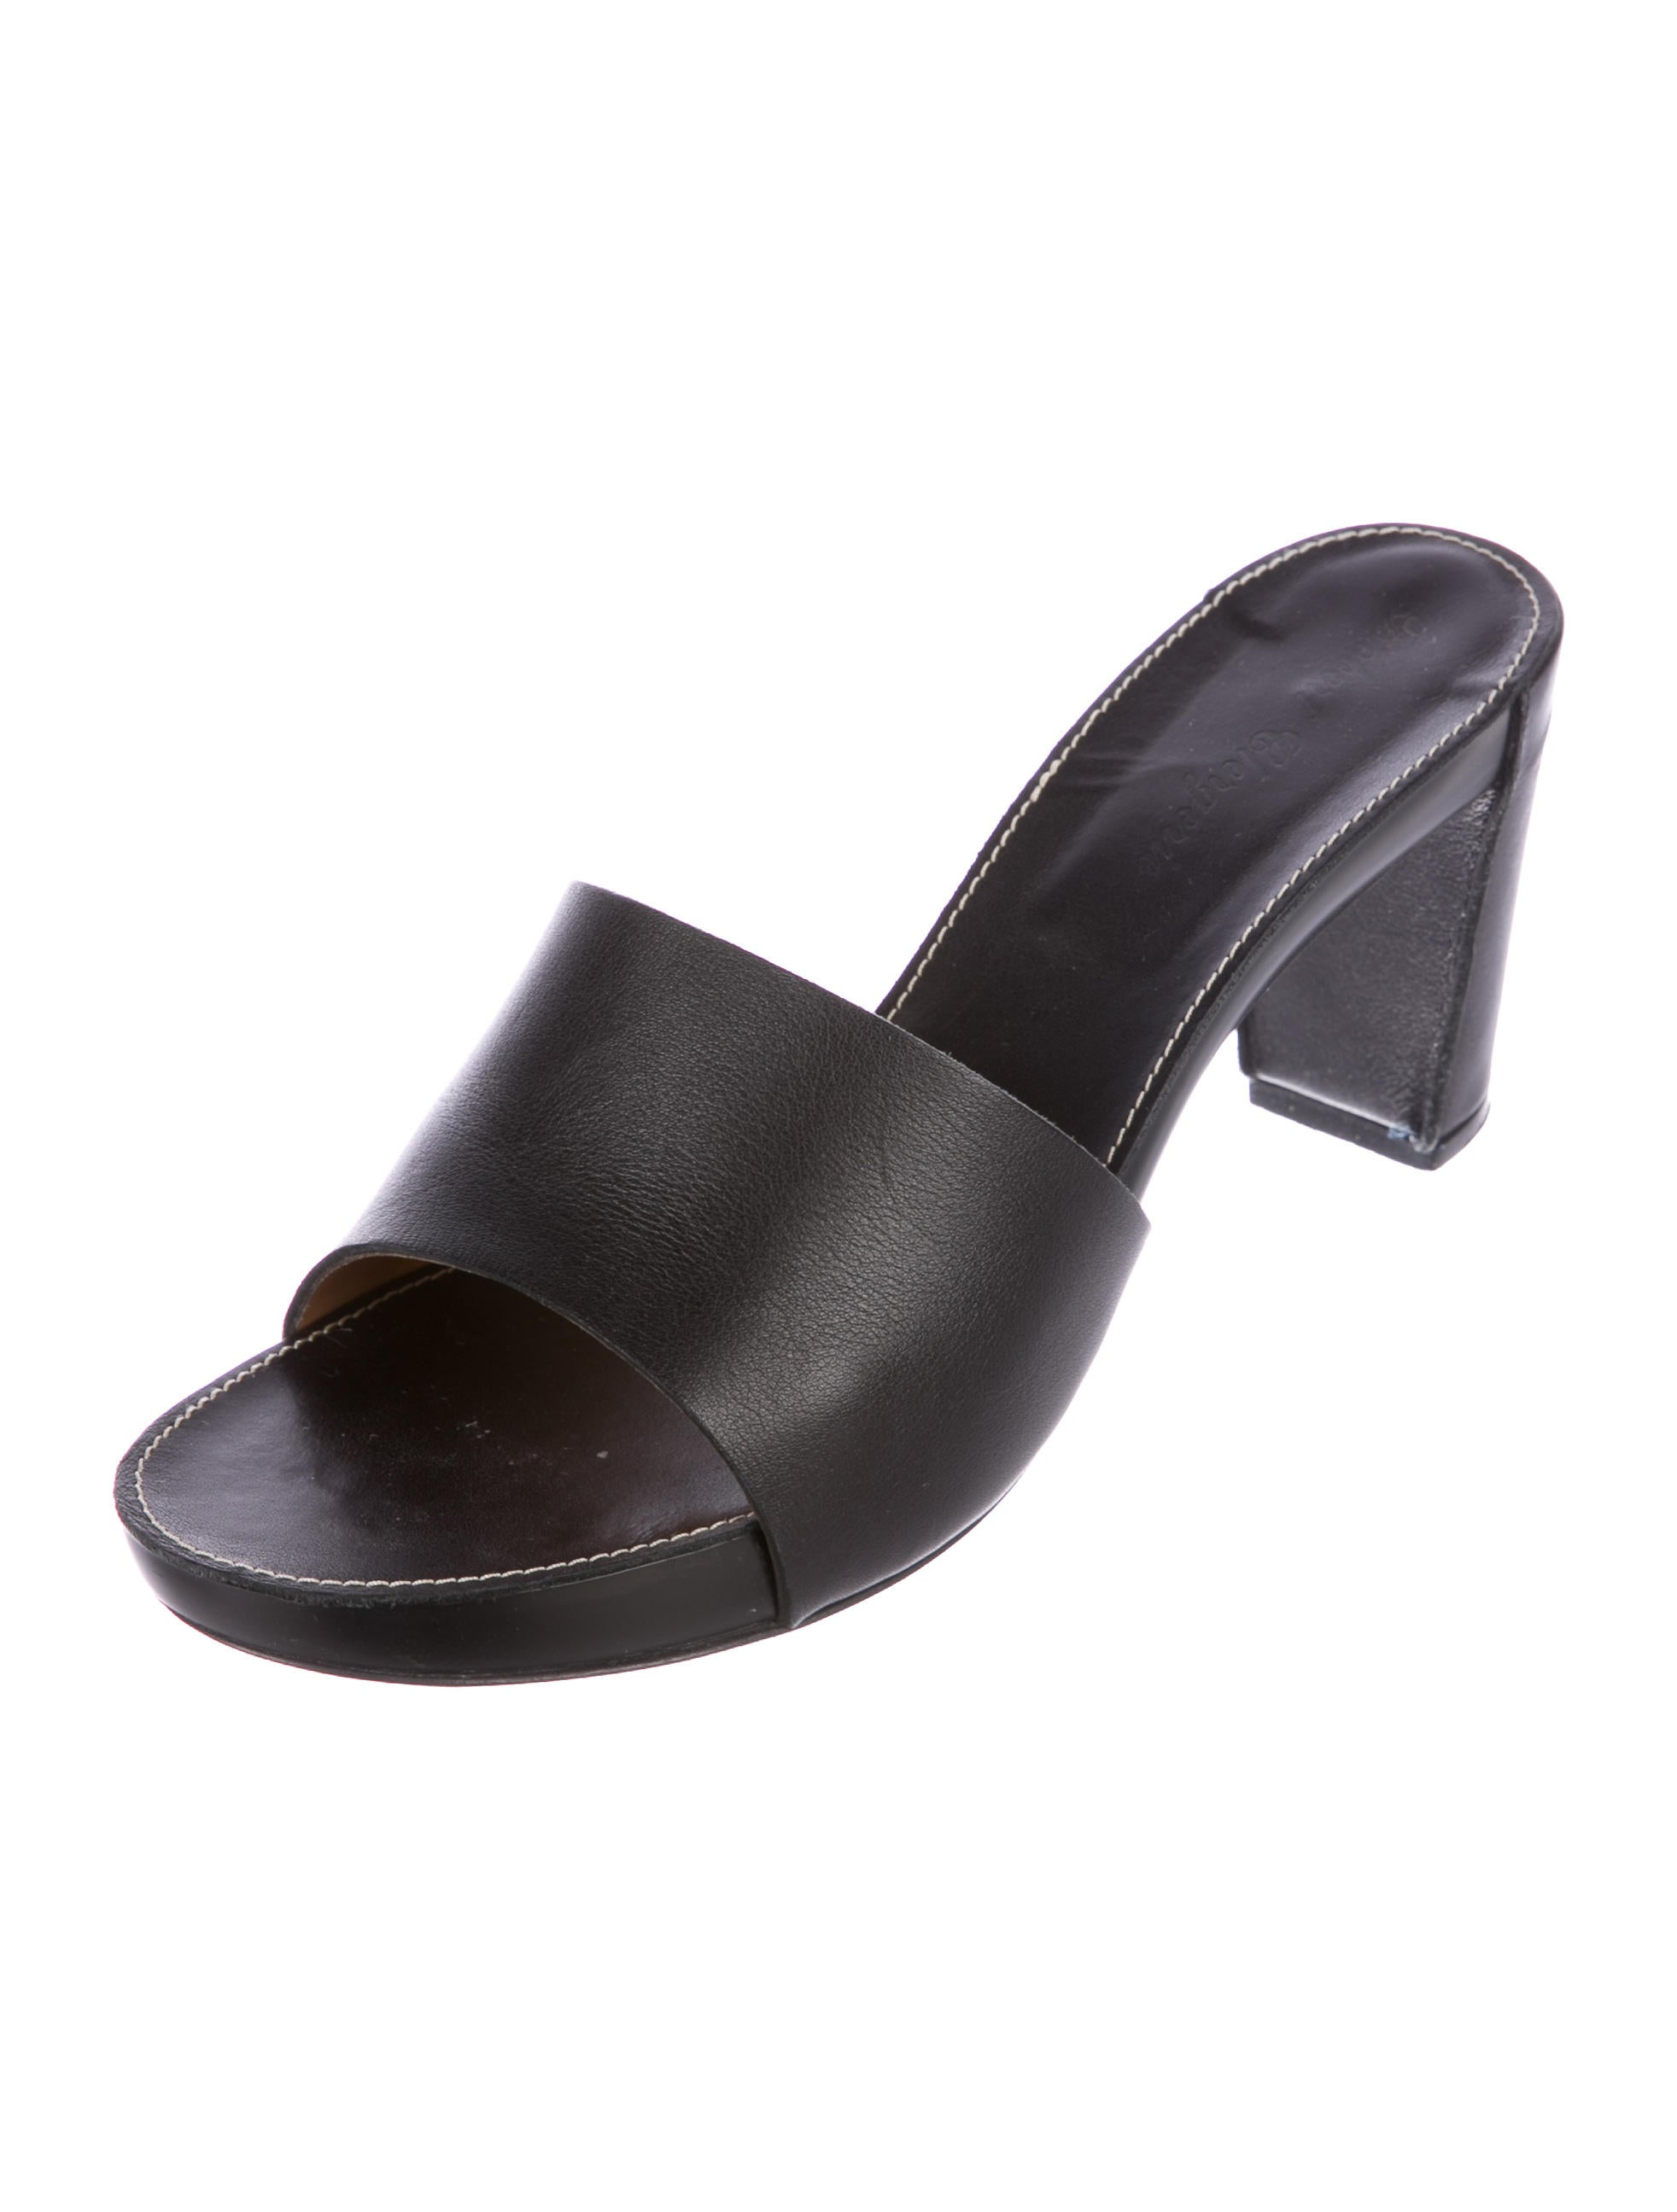 order for sale Robert Clergerie Cranby Leather Sandals excellent outlet cheap quality veluh4HNm9